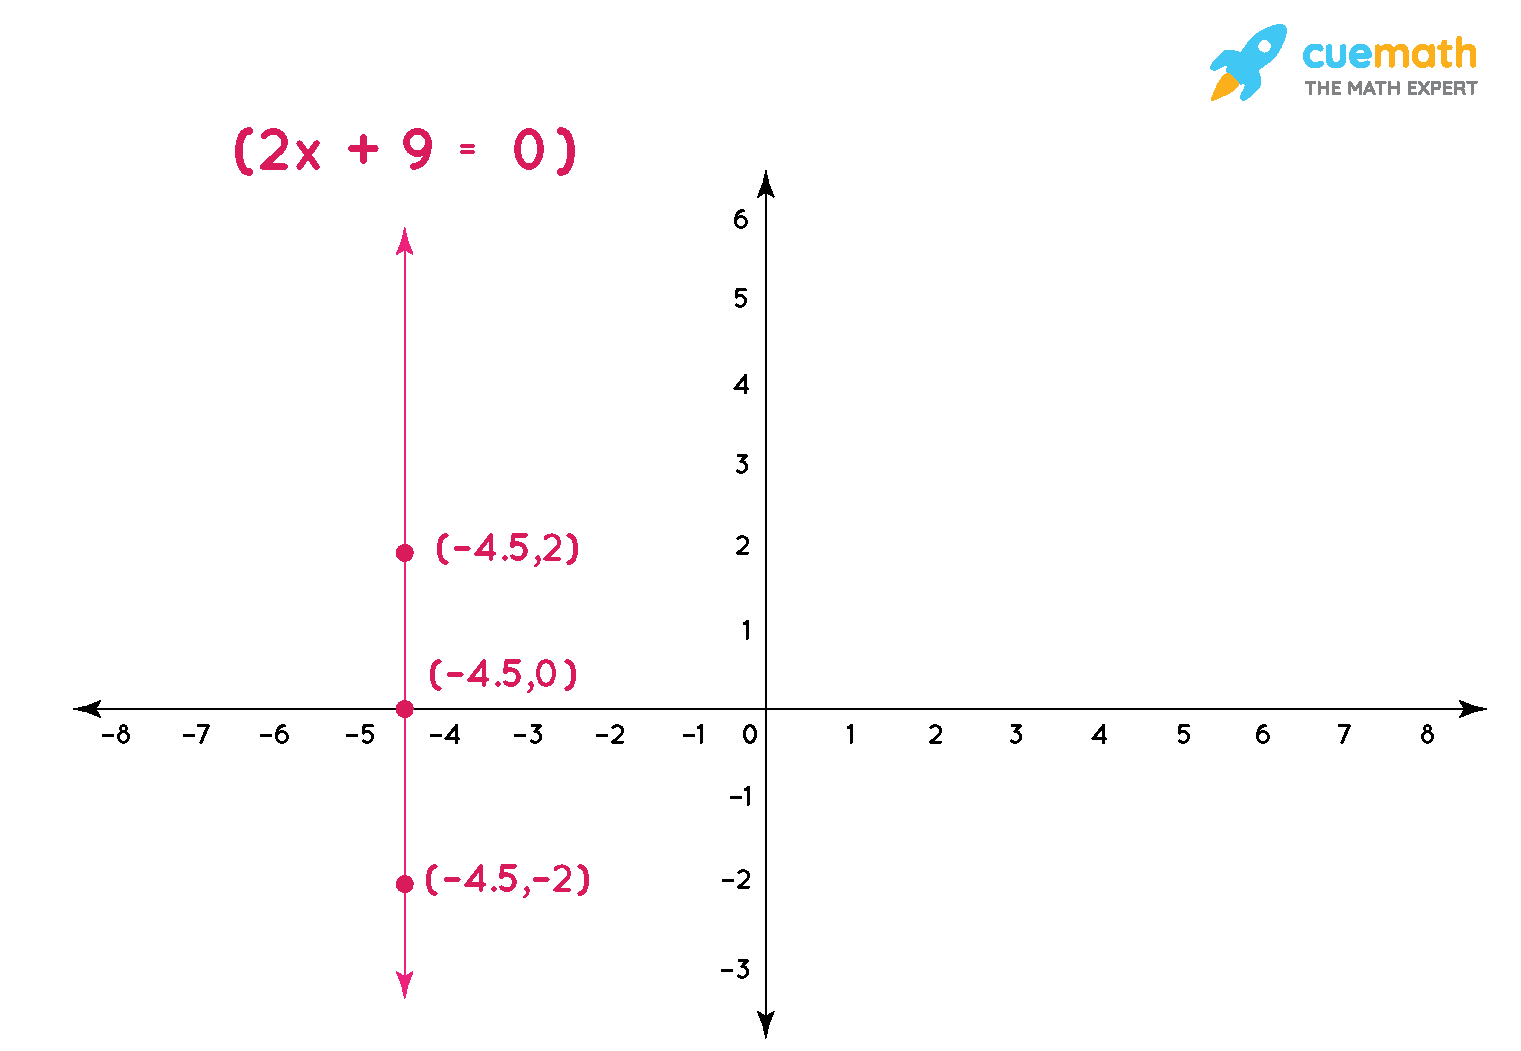 Give the geometric representations of 2x + 9 = 0 as an equation in two variables